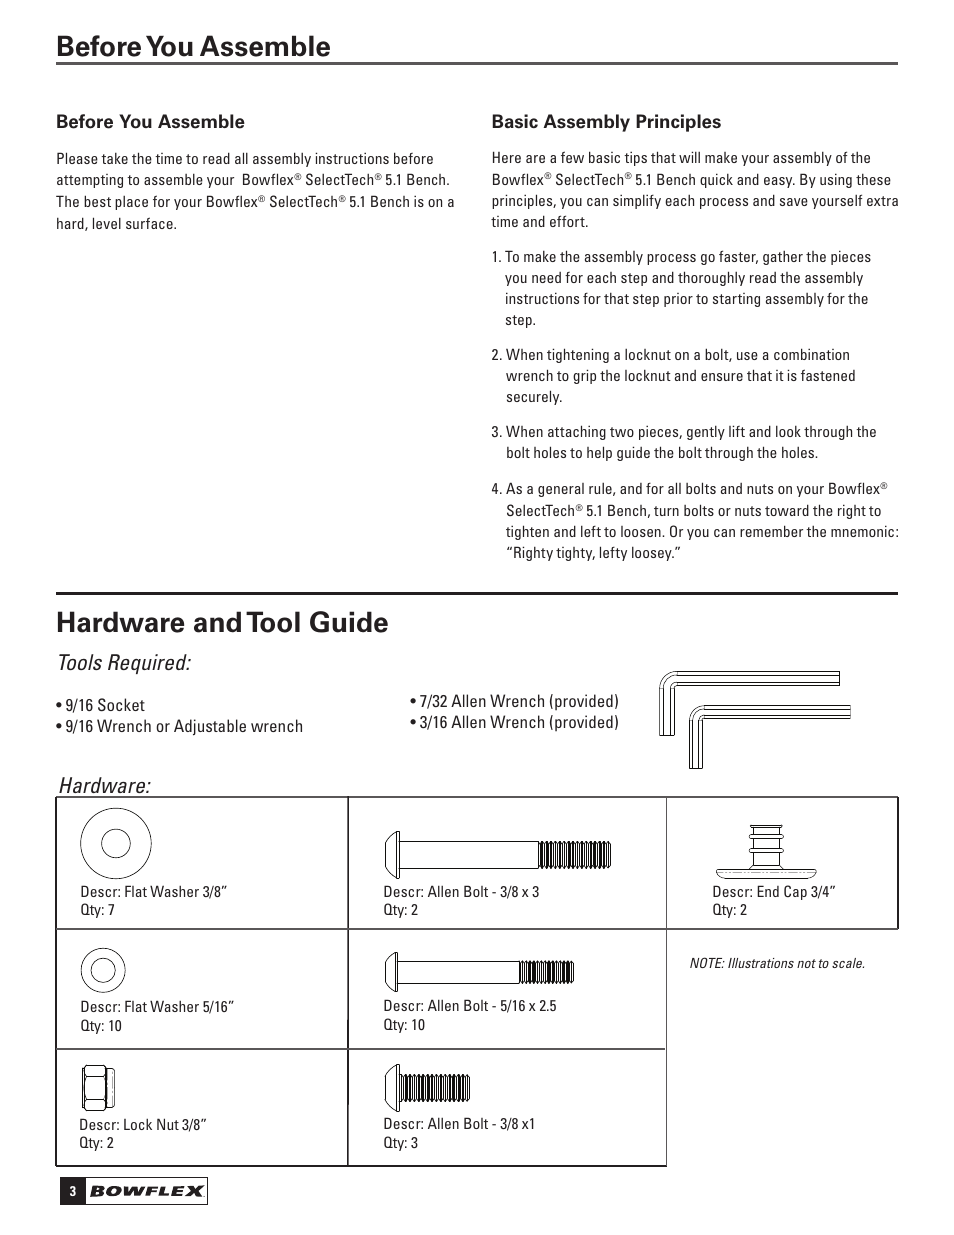 hardware and tool guide before you assemble tools required rh manualsdir com Bowflex 3 1 Exercise Bench Pictures of the Bowflex SelectTech Adjustable Bench Series 3 1